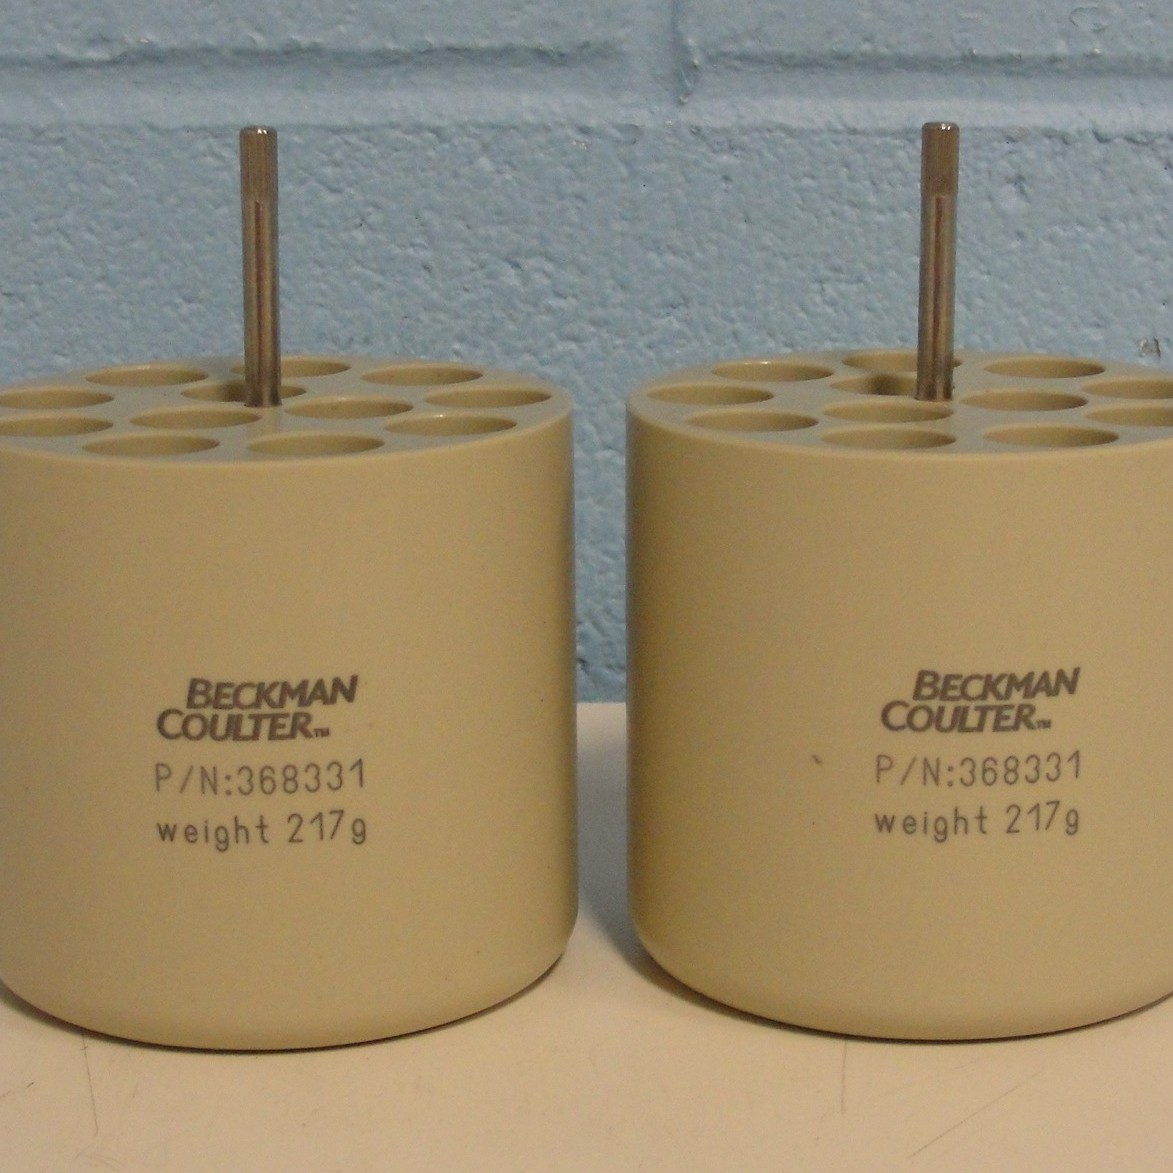 Beckman Coulter Conical Tube Adapter Image